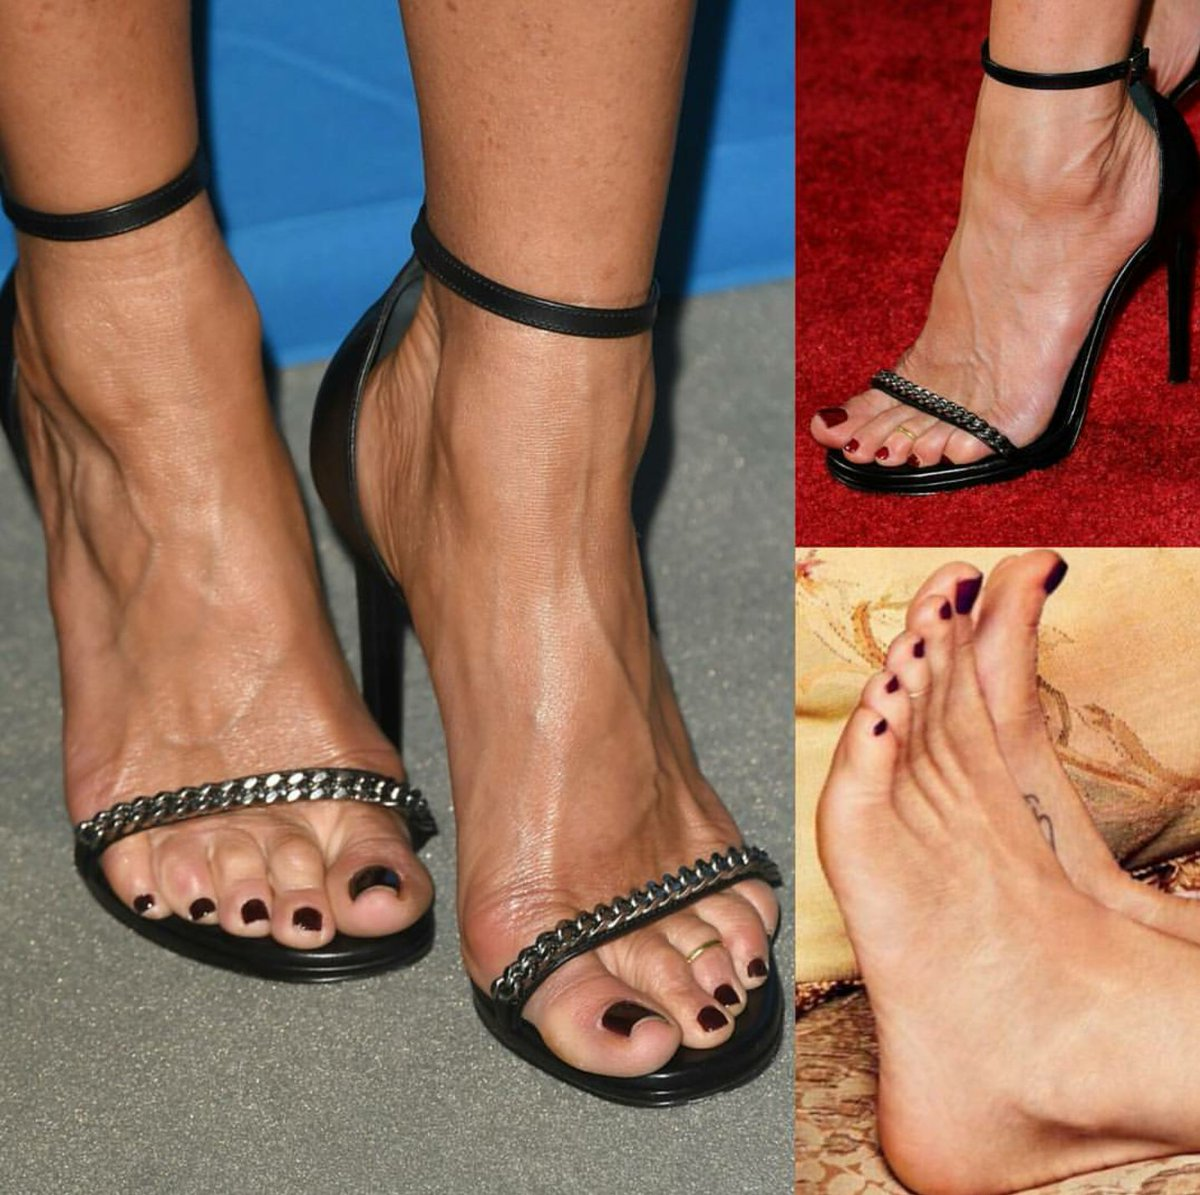 Jennifer aniston foot fetish tease deepfake porn